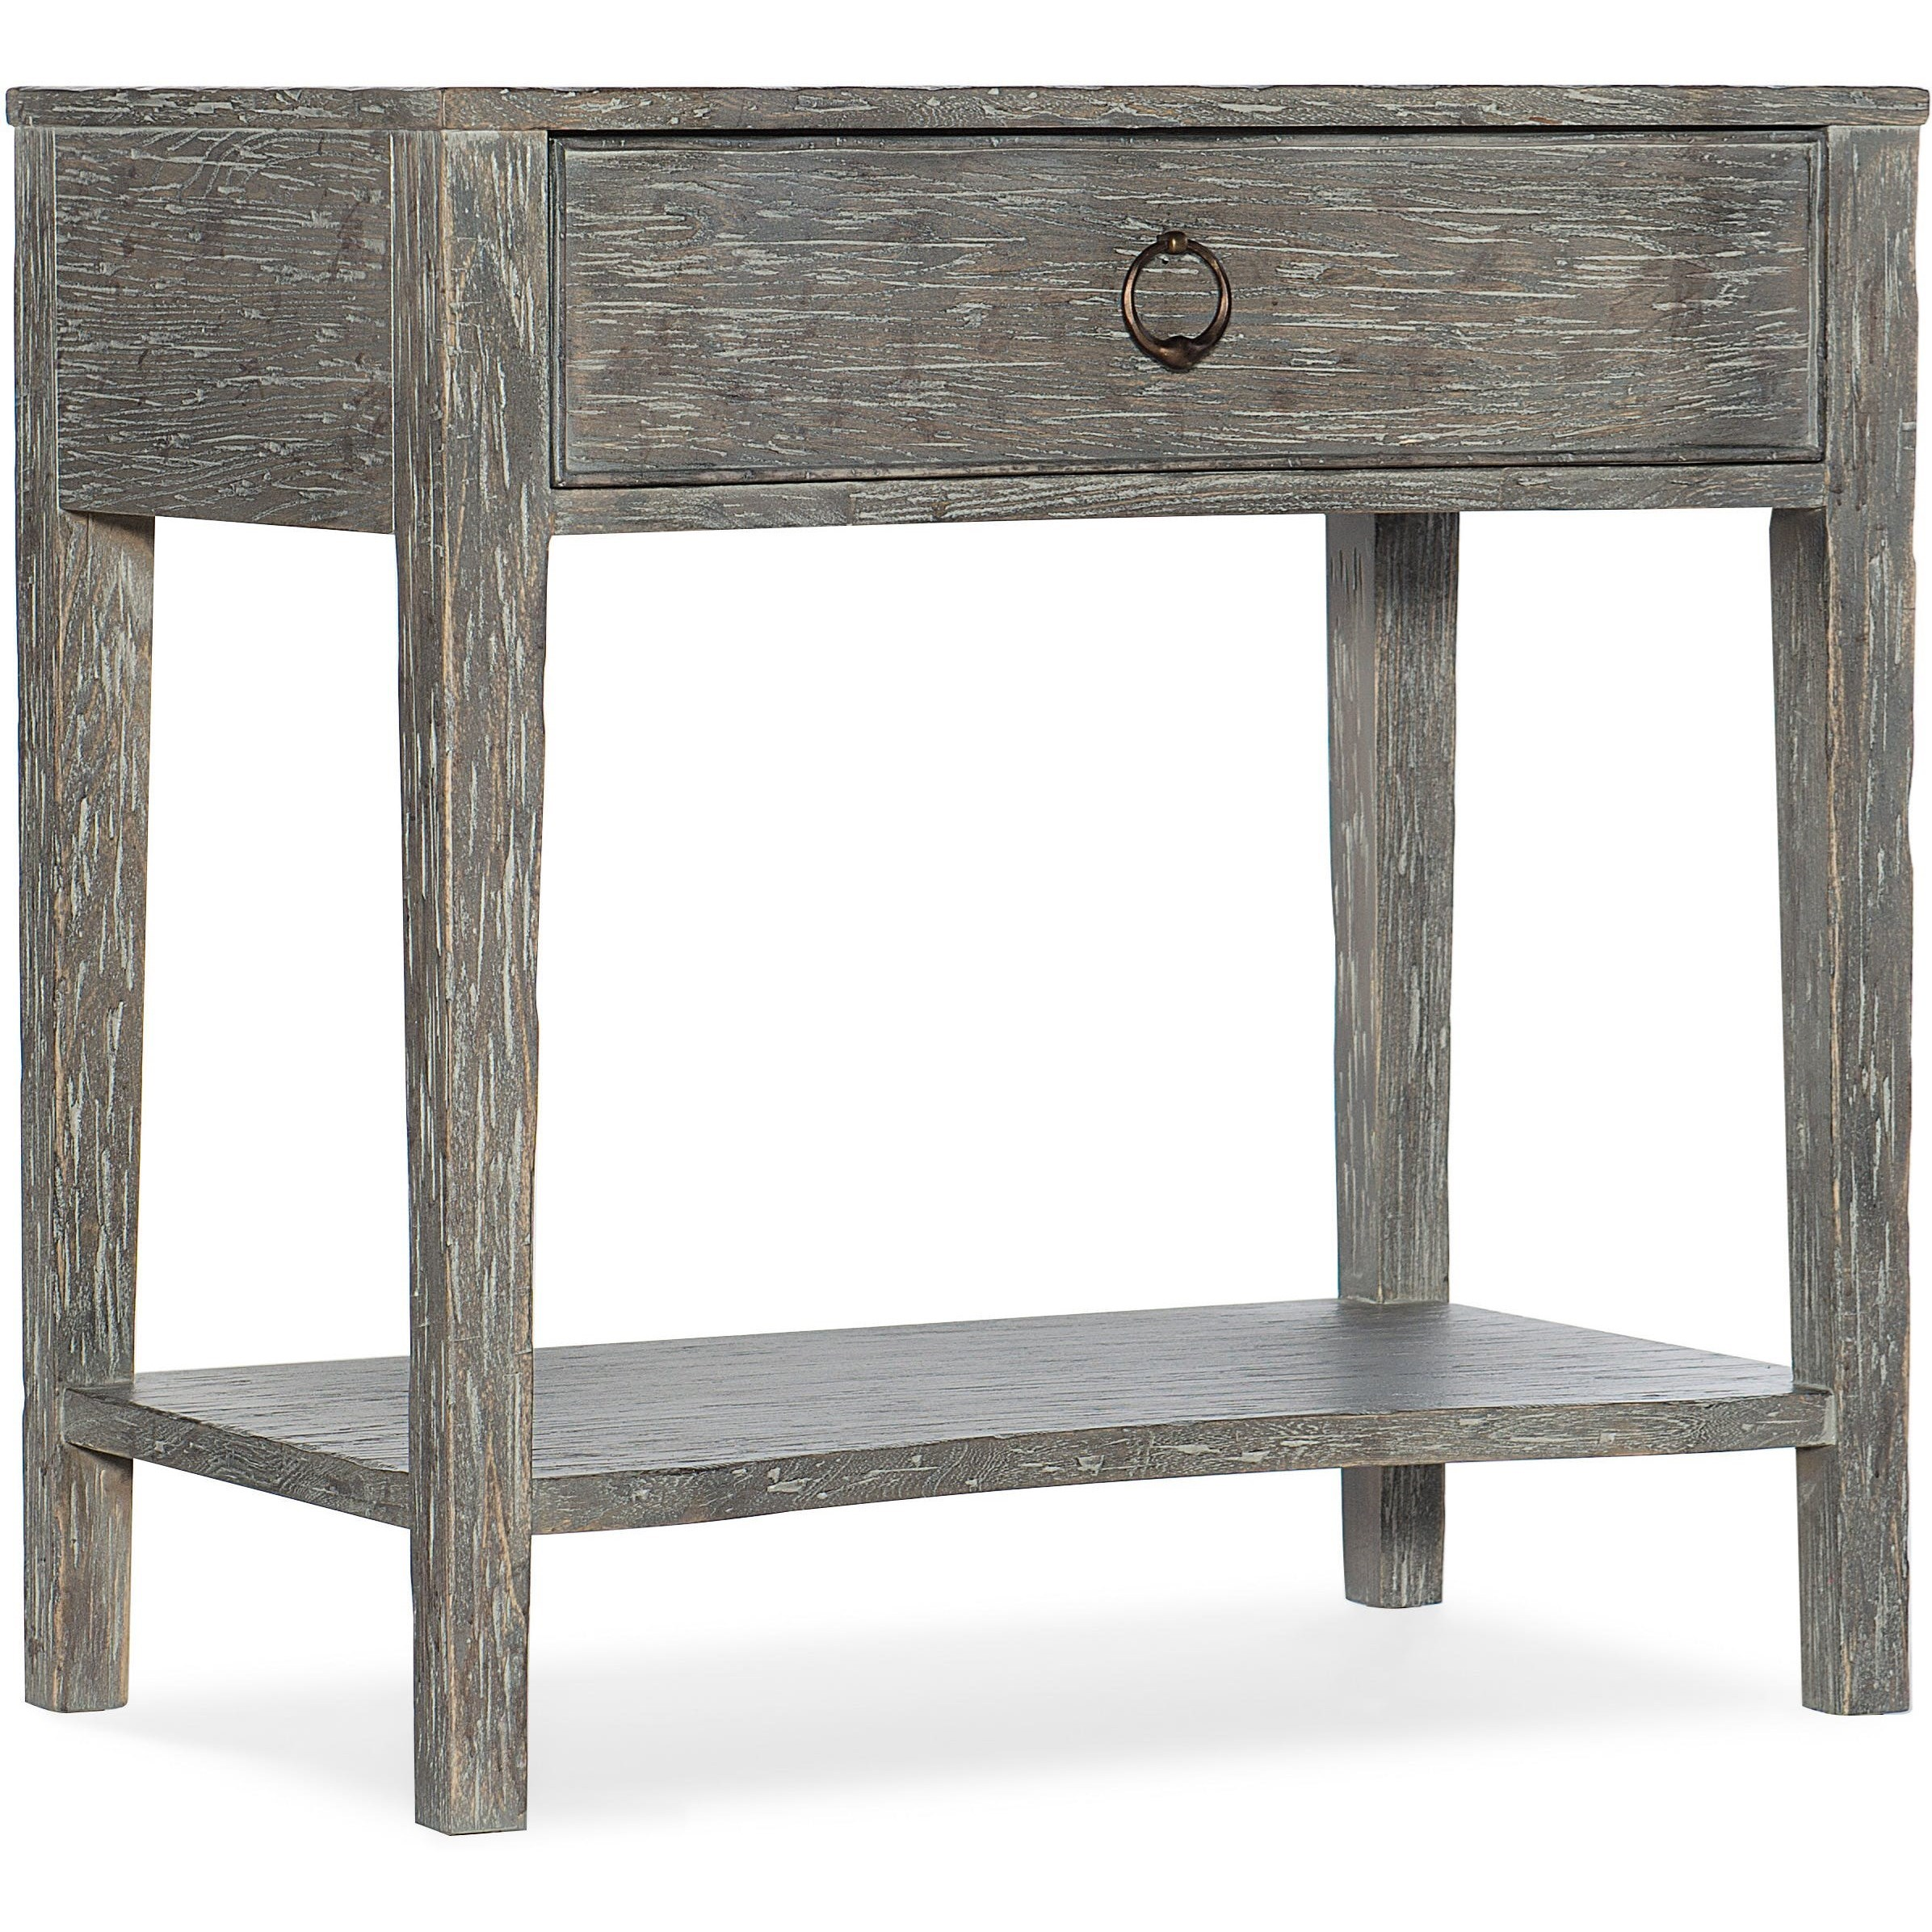 Beaumont One-Drawer Nightstand by Hooker Furniture at Alison Craig Home Furnishings